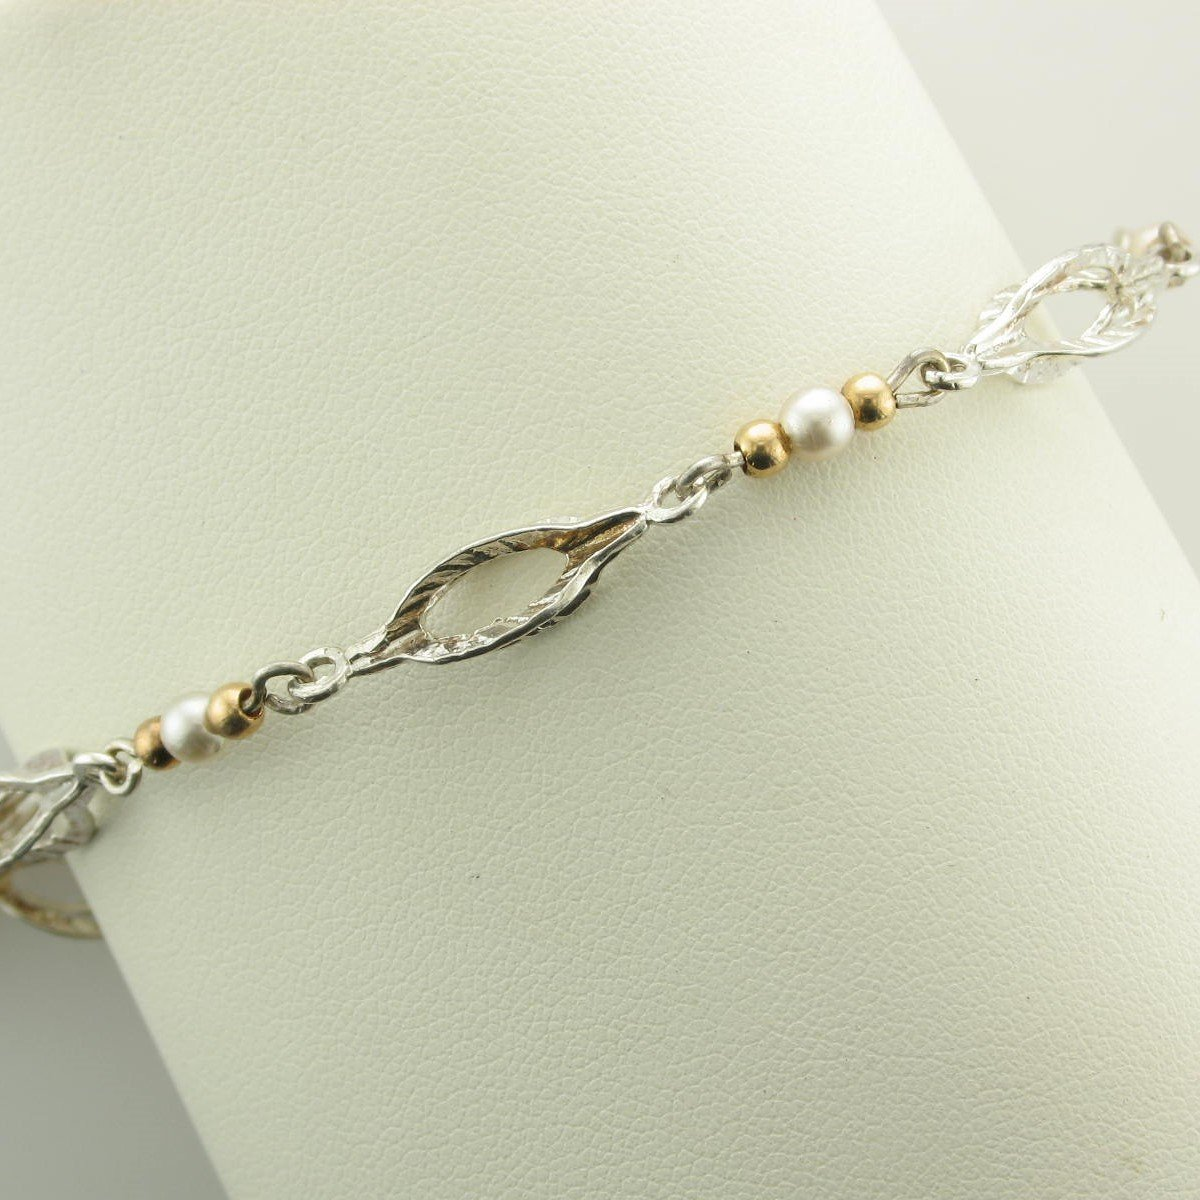 Sterling Silver Elongated Bubbles, 14K Yellow Gold Beads, and Pearls Bracelet